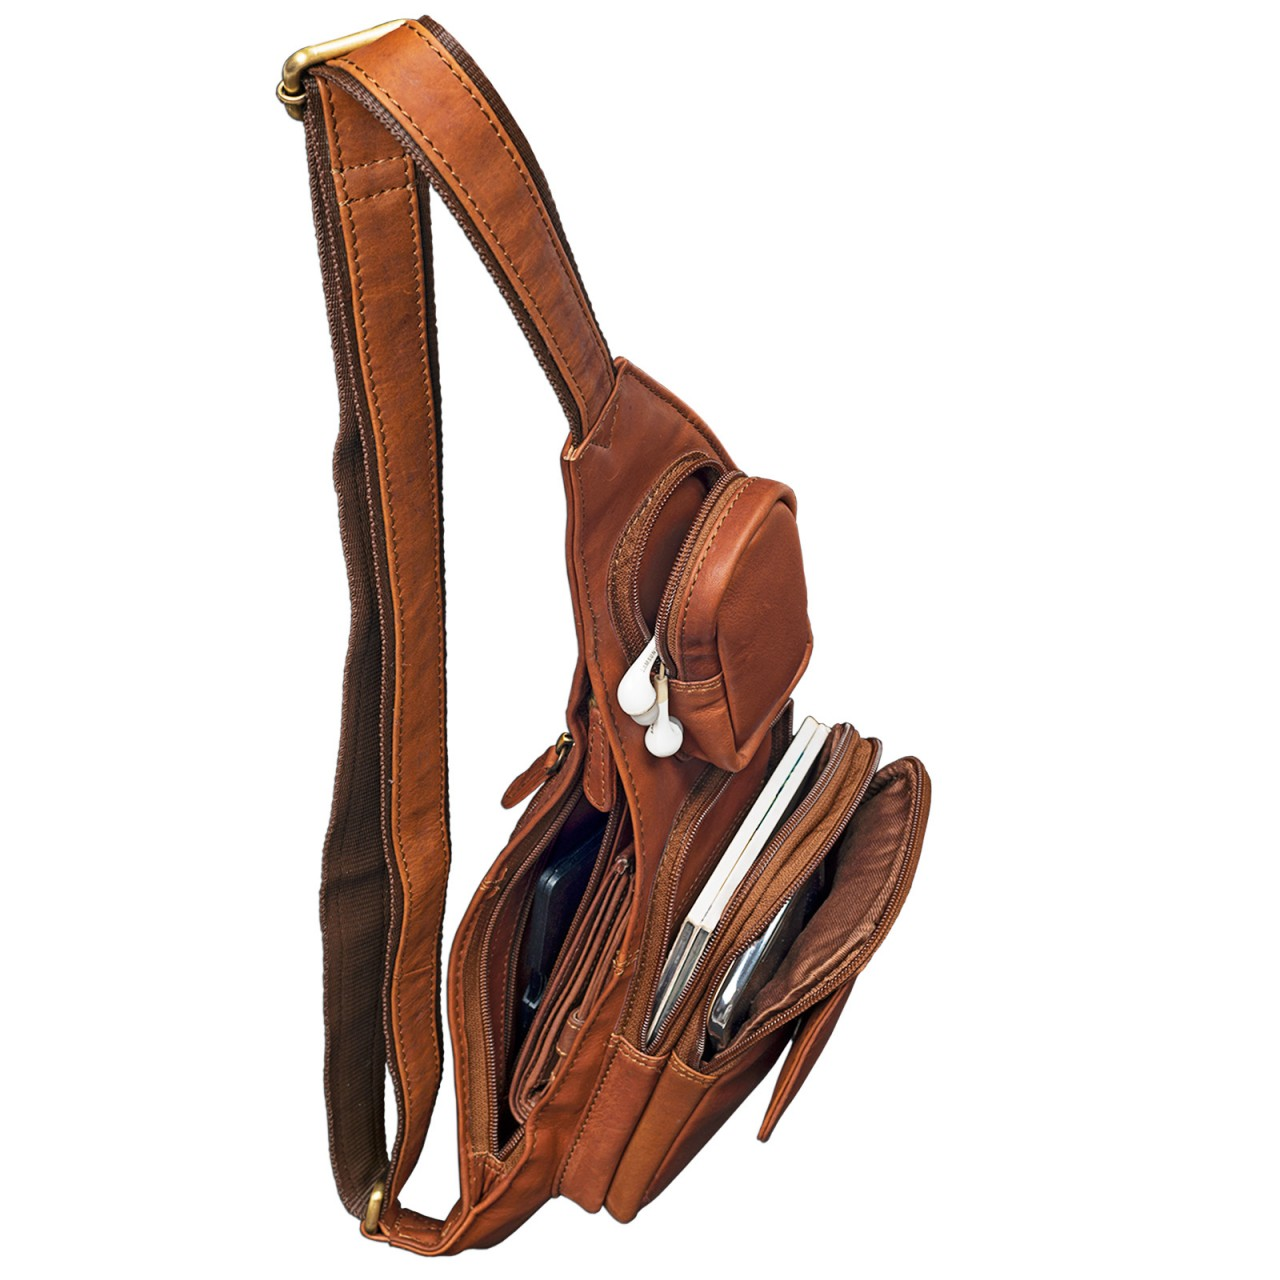 2-in-1 Ledertasche